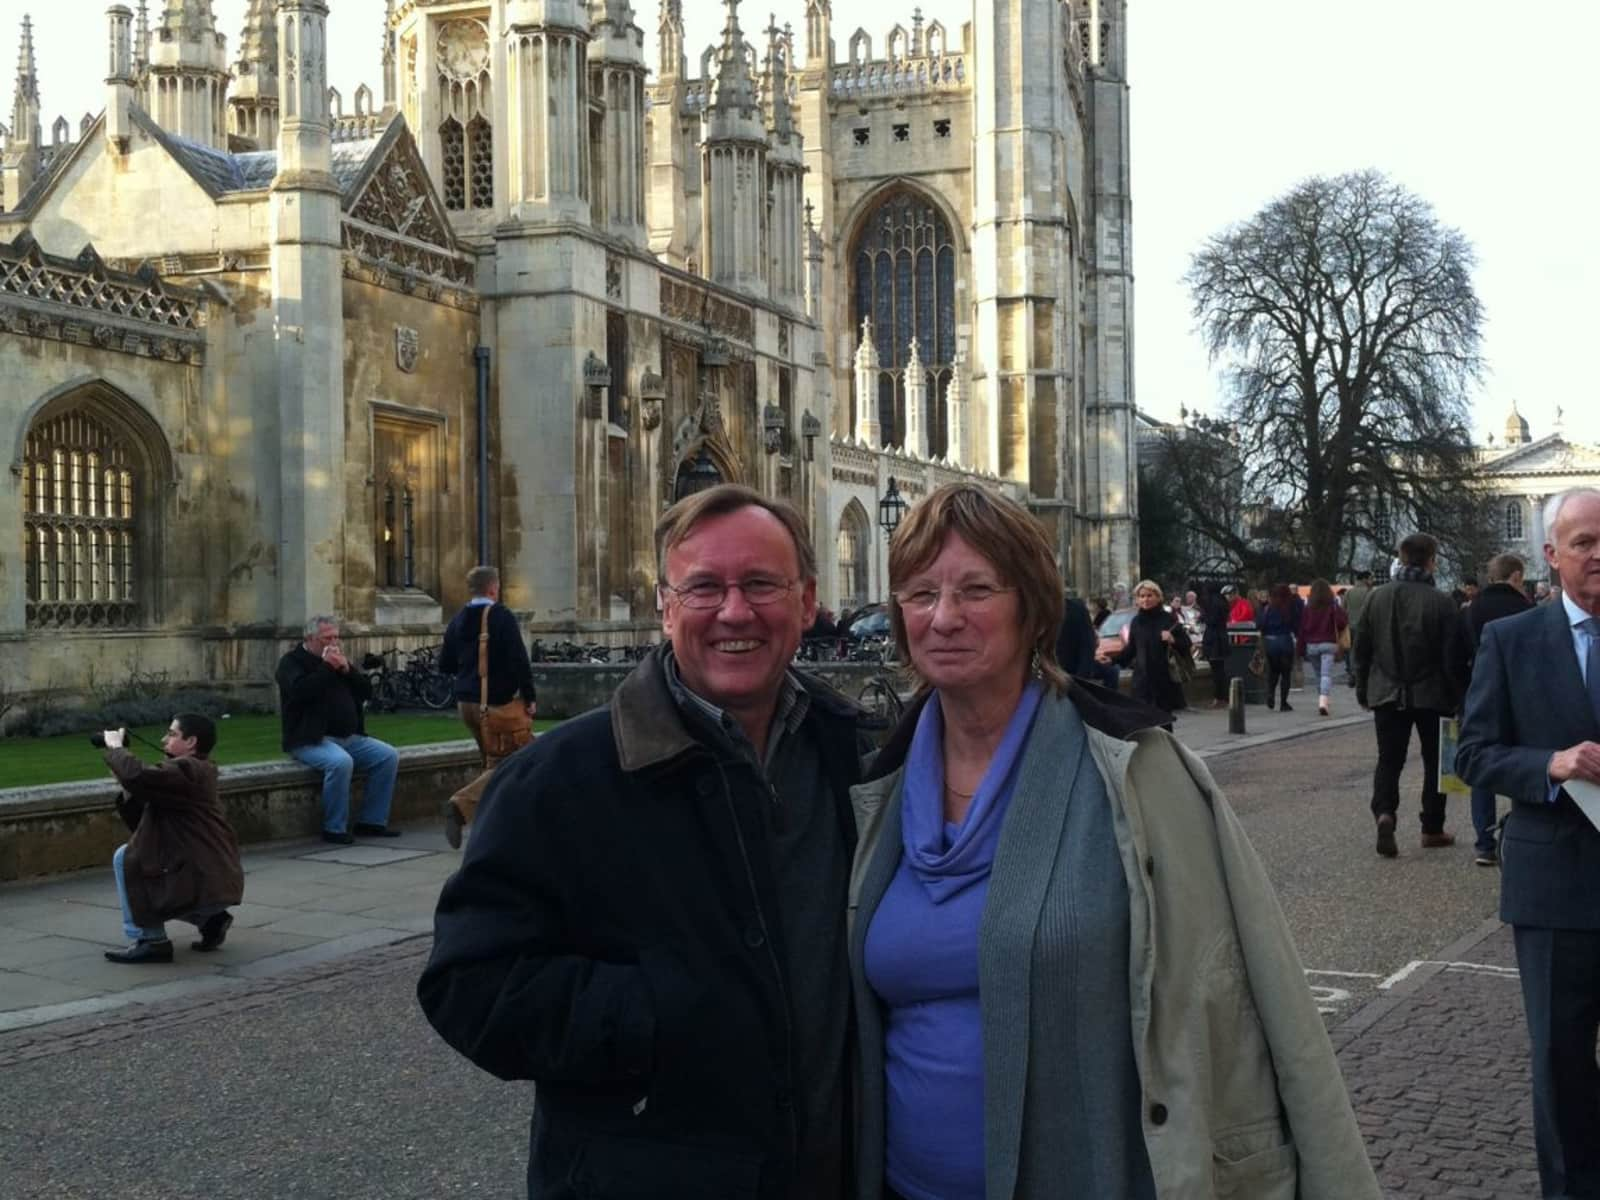 Peter & Susan from Pons, France